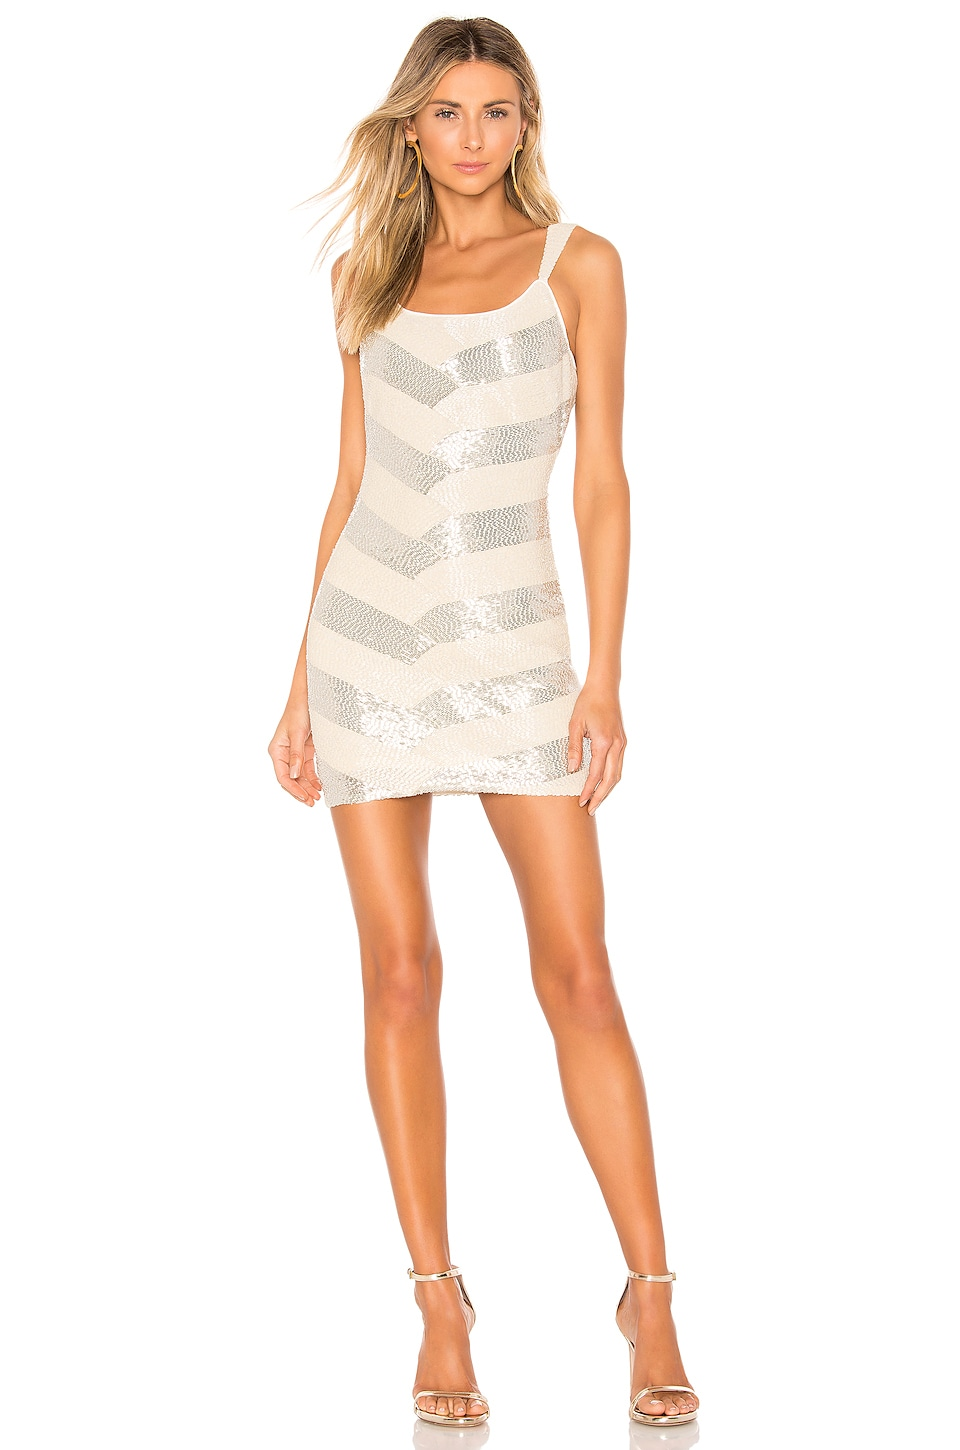 X by NBD Montserrat Embellished Mini Dress in White and Silver